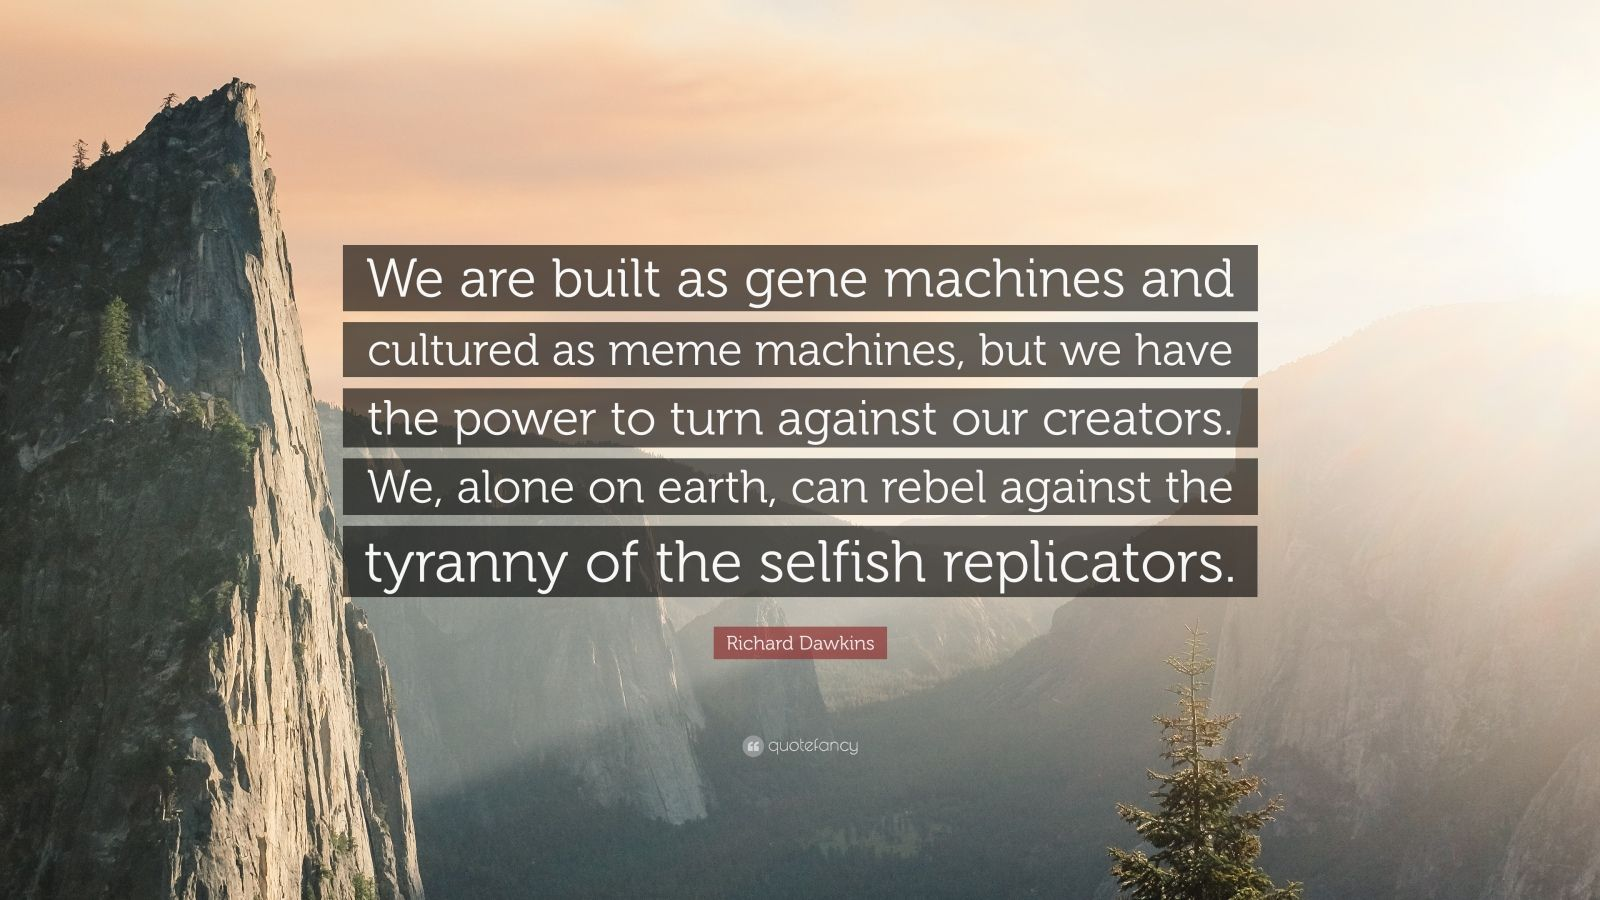 """Richard Dawkins Quote: """"We are built as gene machines and cultured as meme machines, but we have the power to turn against our creators. We, alone on earth, can rebel against the tyranny of the selfish replicators."""""""